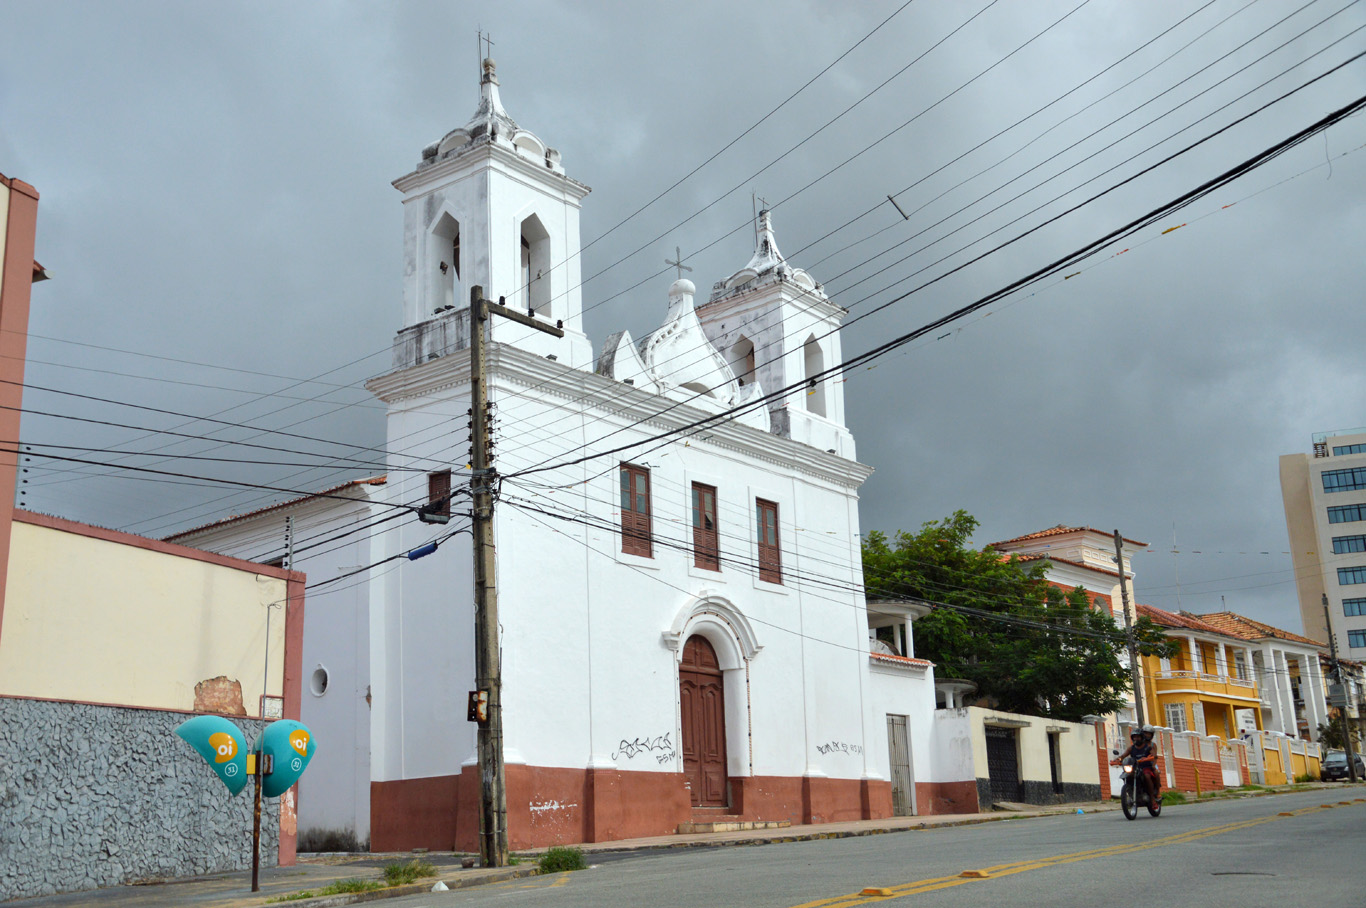 One of many churches in Sao Luis